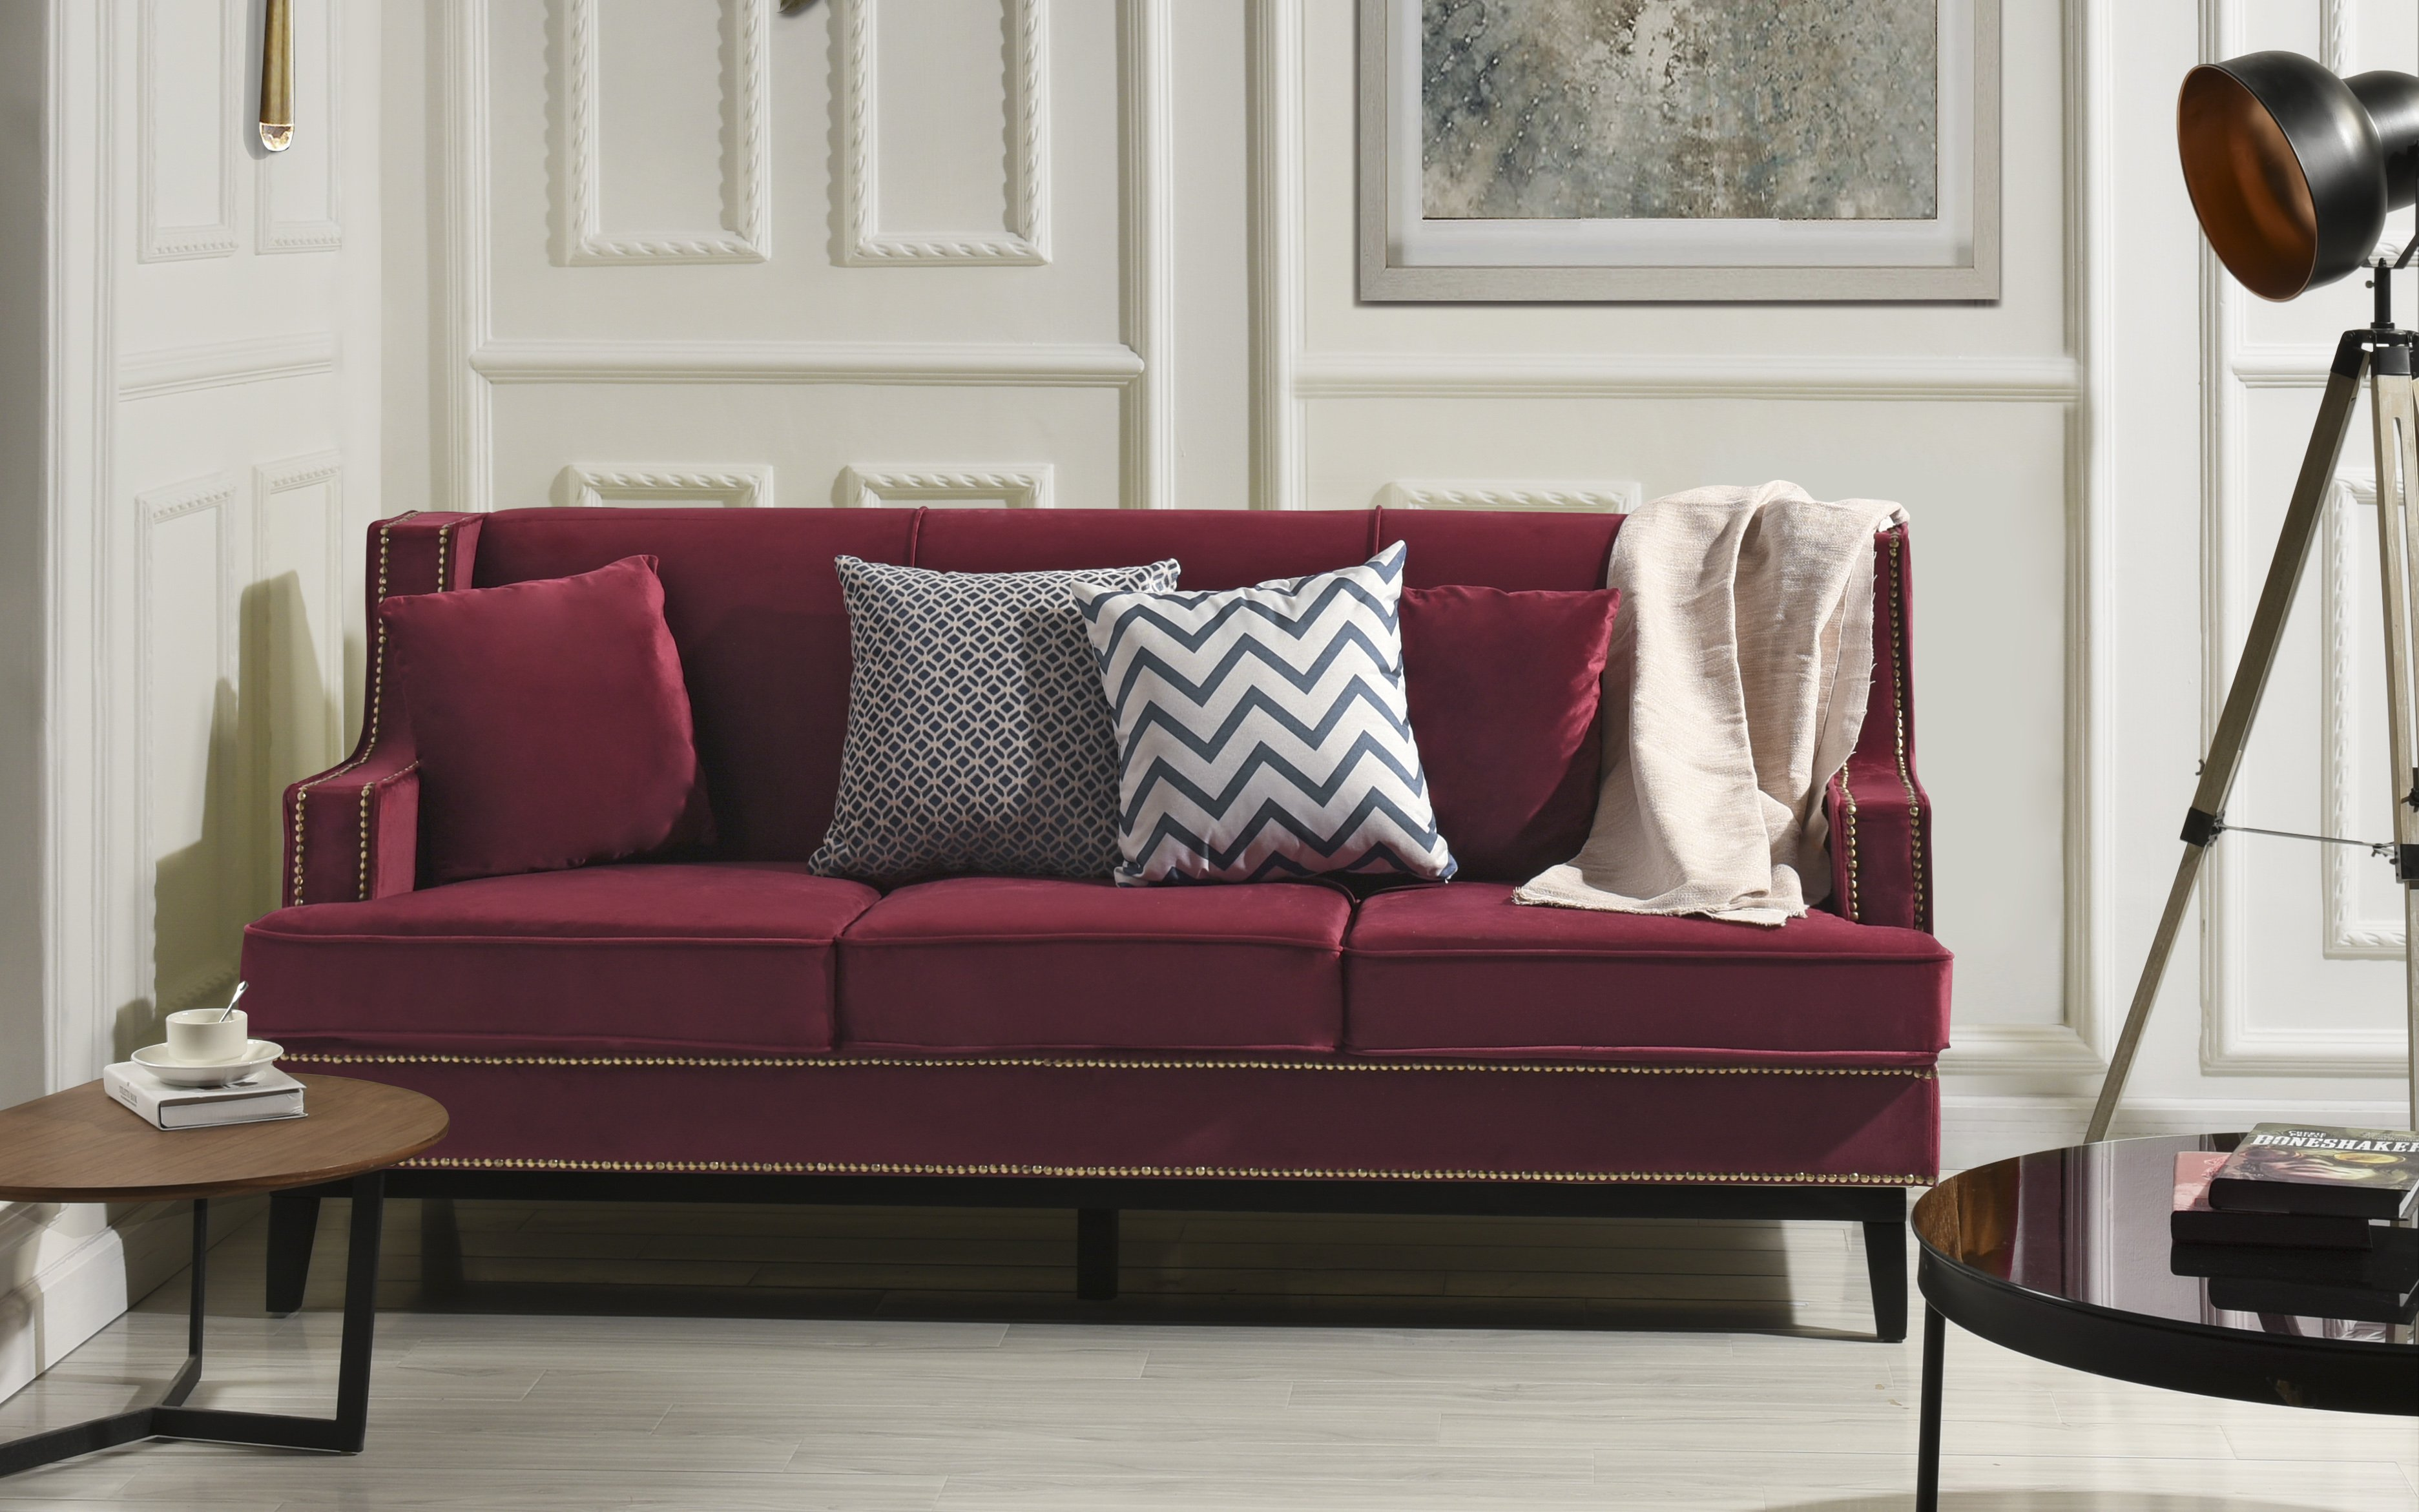 Details about Modern Vintage Style Soft Velvet Sofa, Couch with Nailhead  Trim Detail (Red)